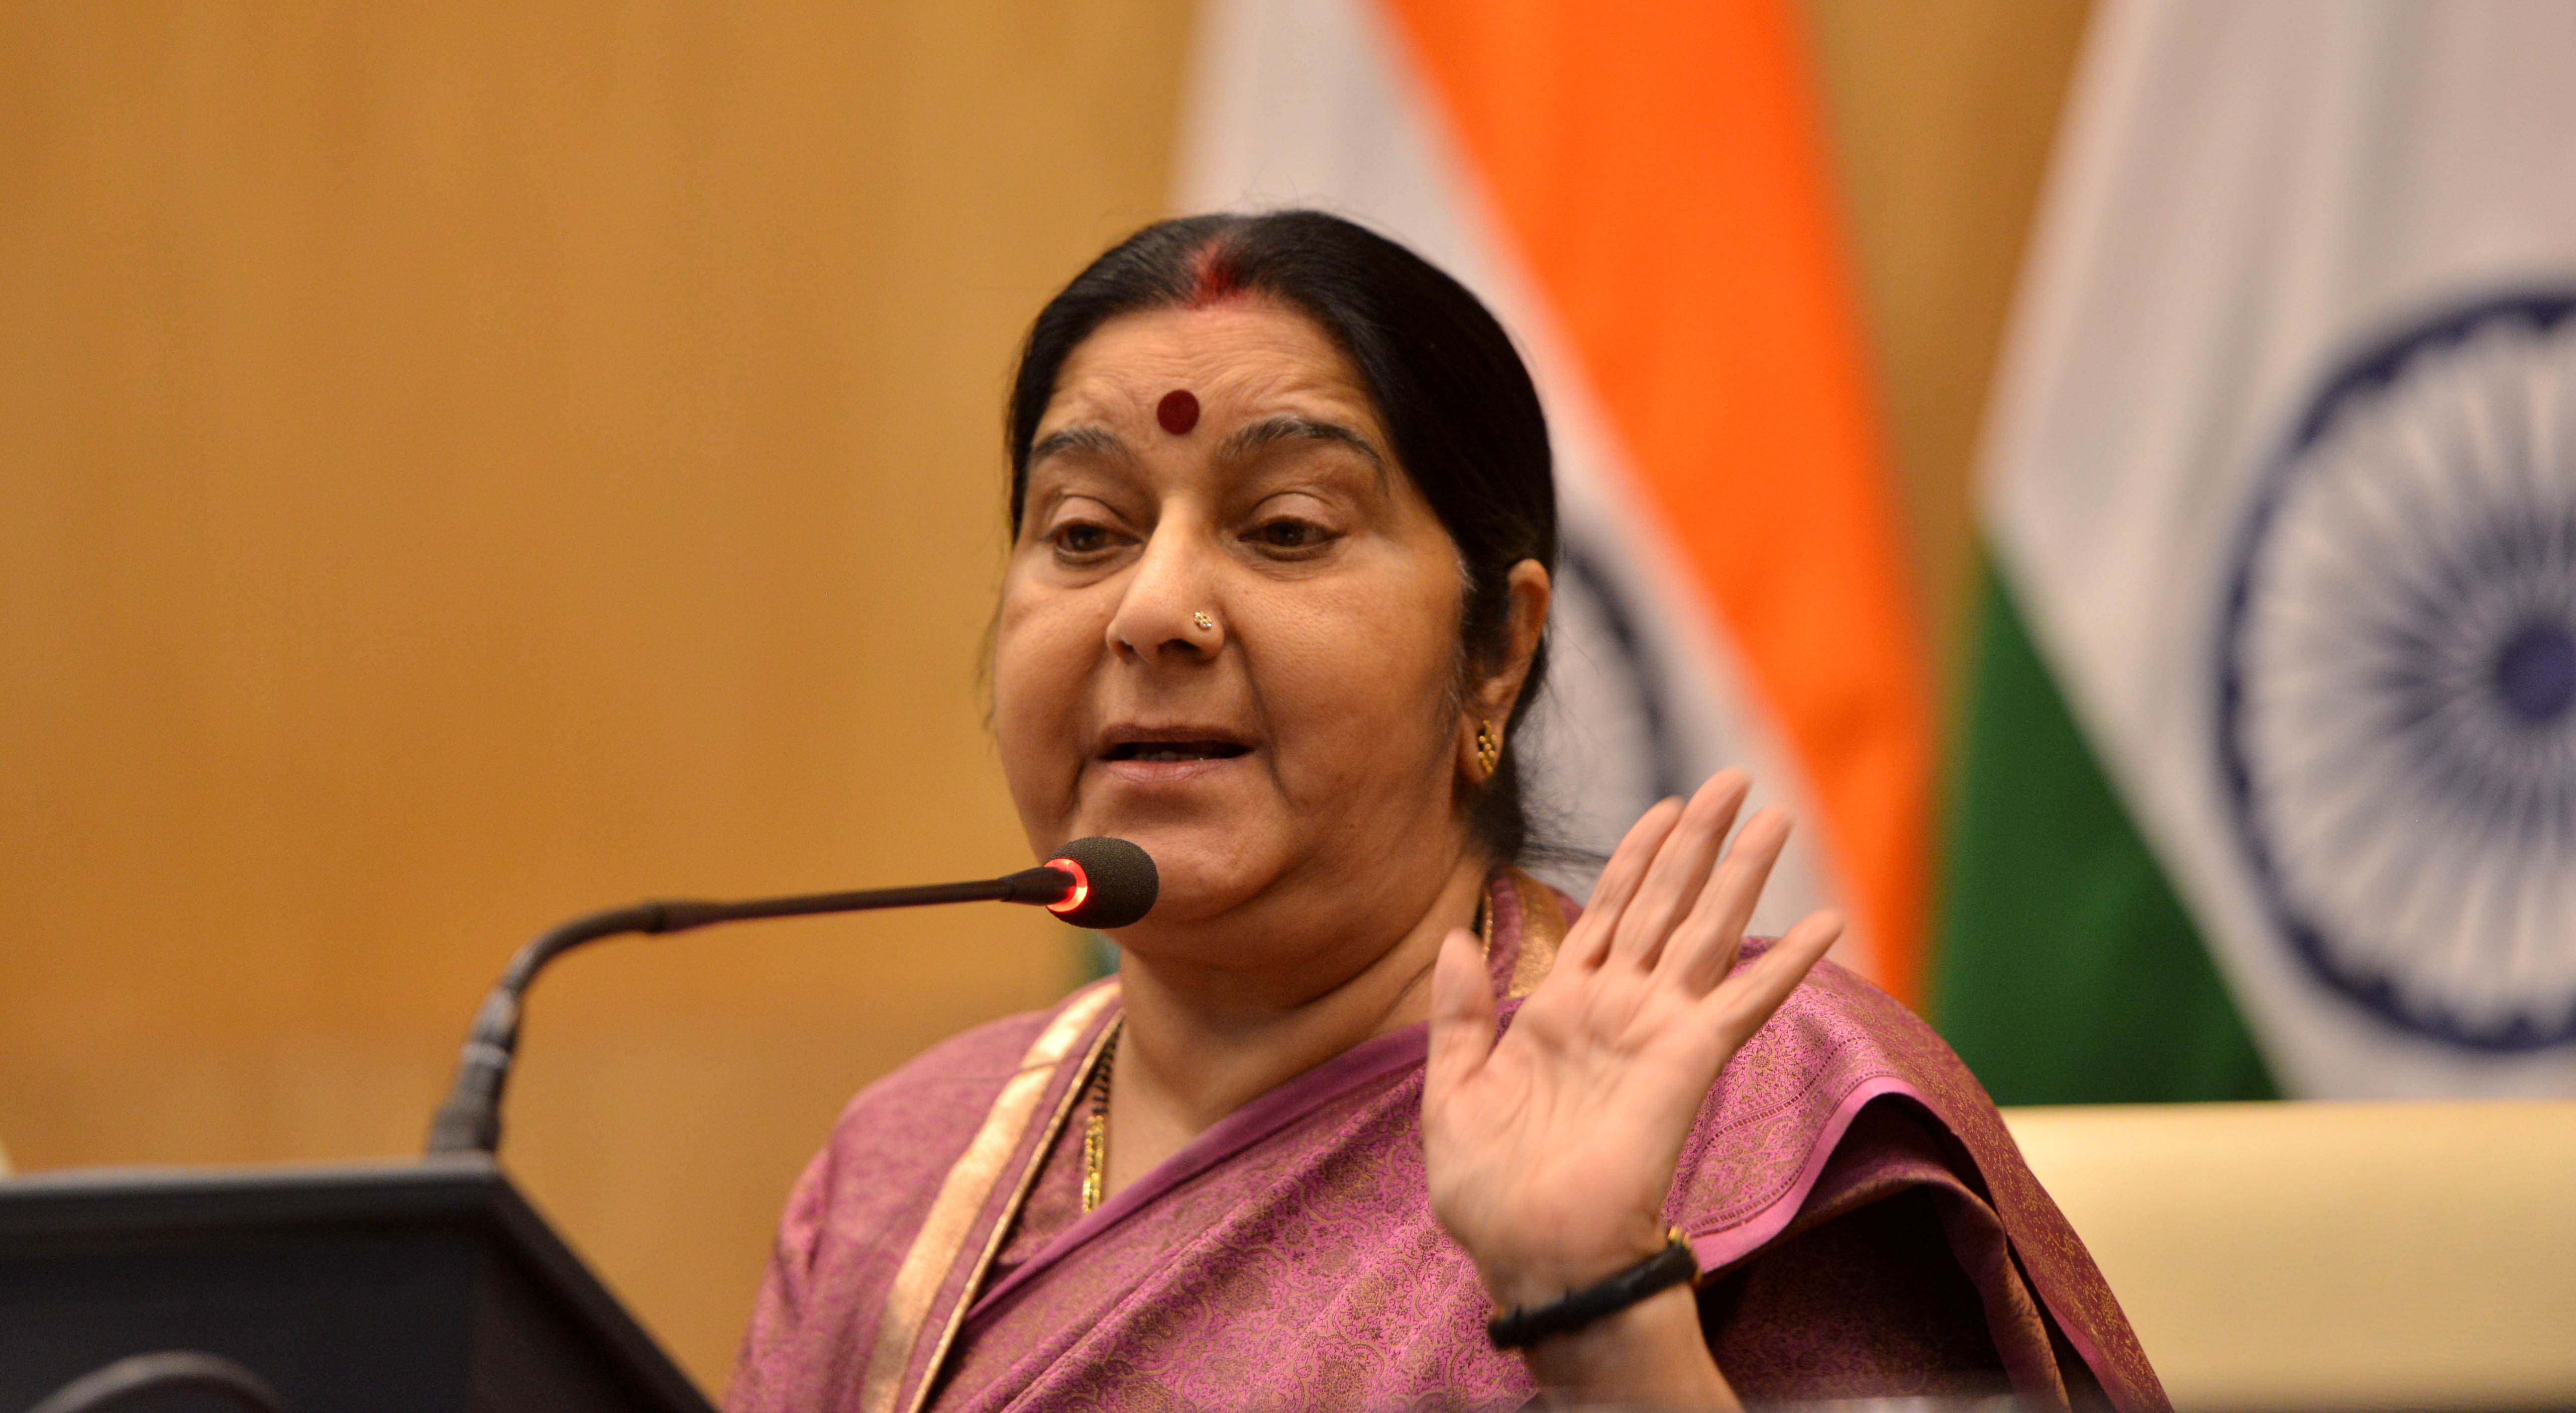 Sushma Swaraj pointed out that Islam literally means peace and none of the 99 names of Allah means violence.